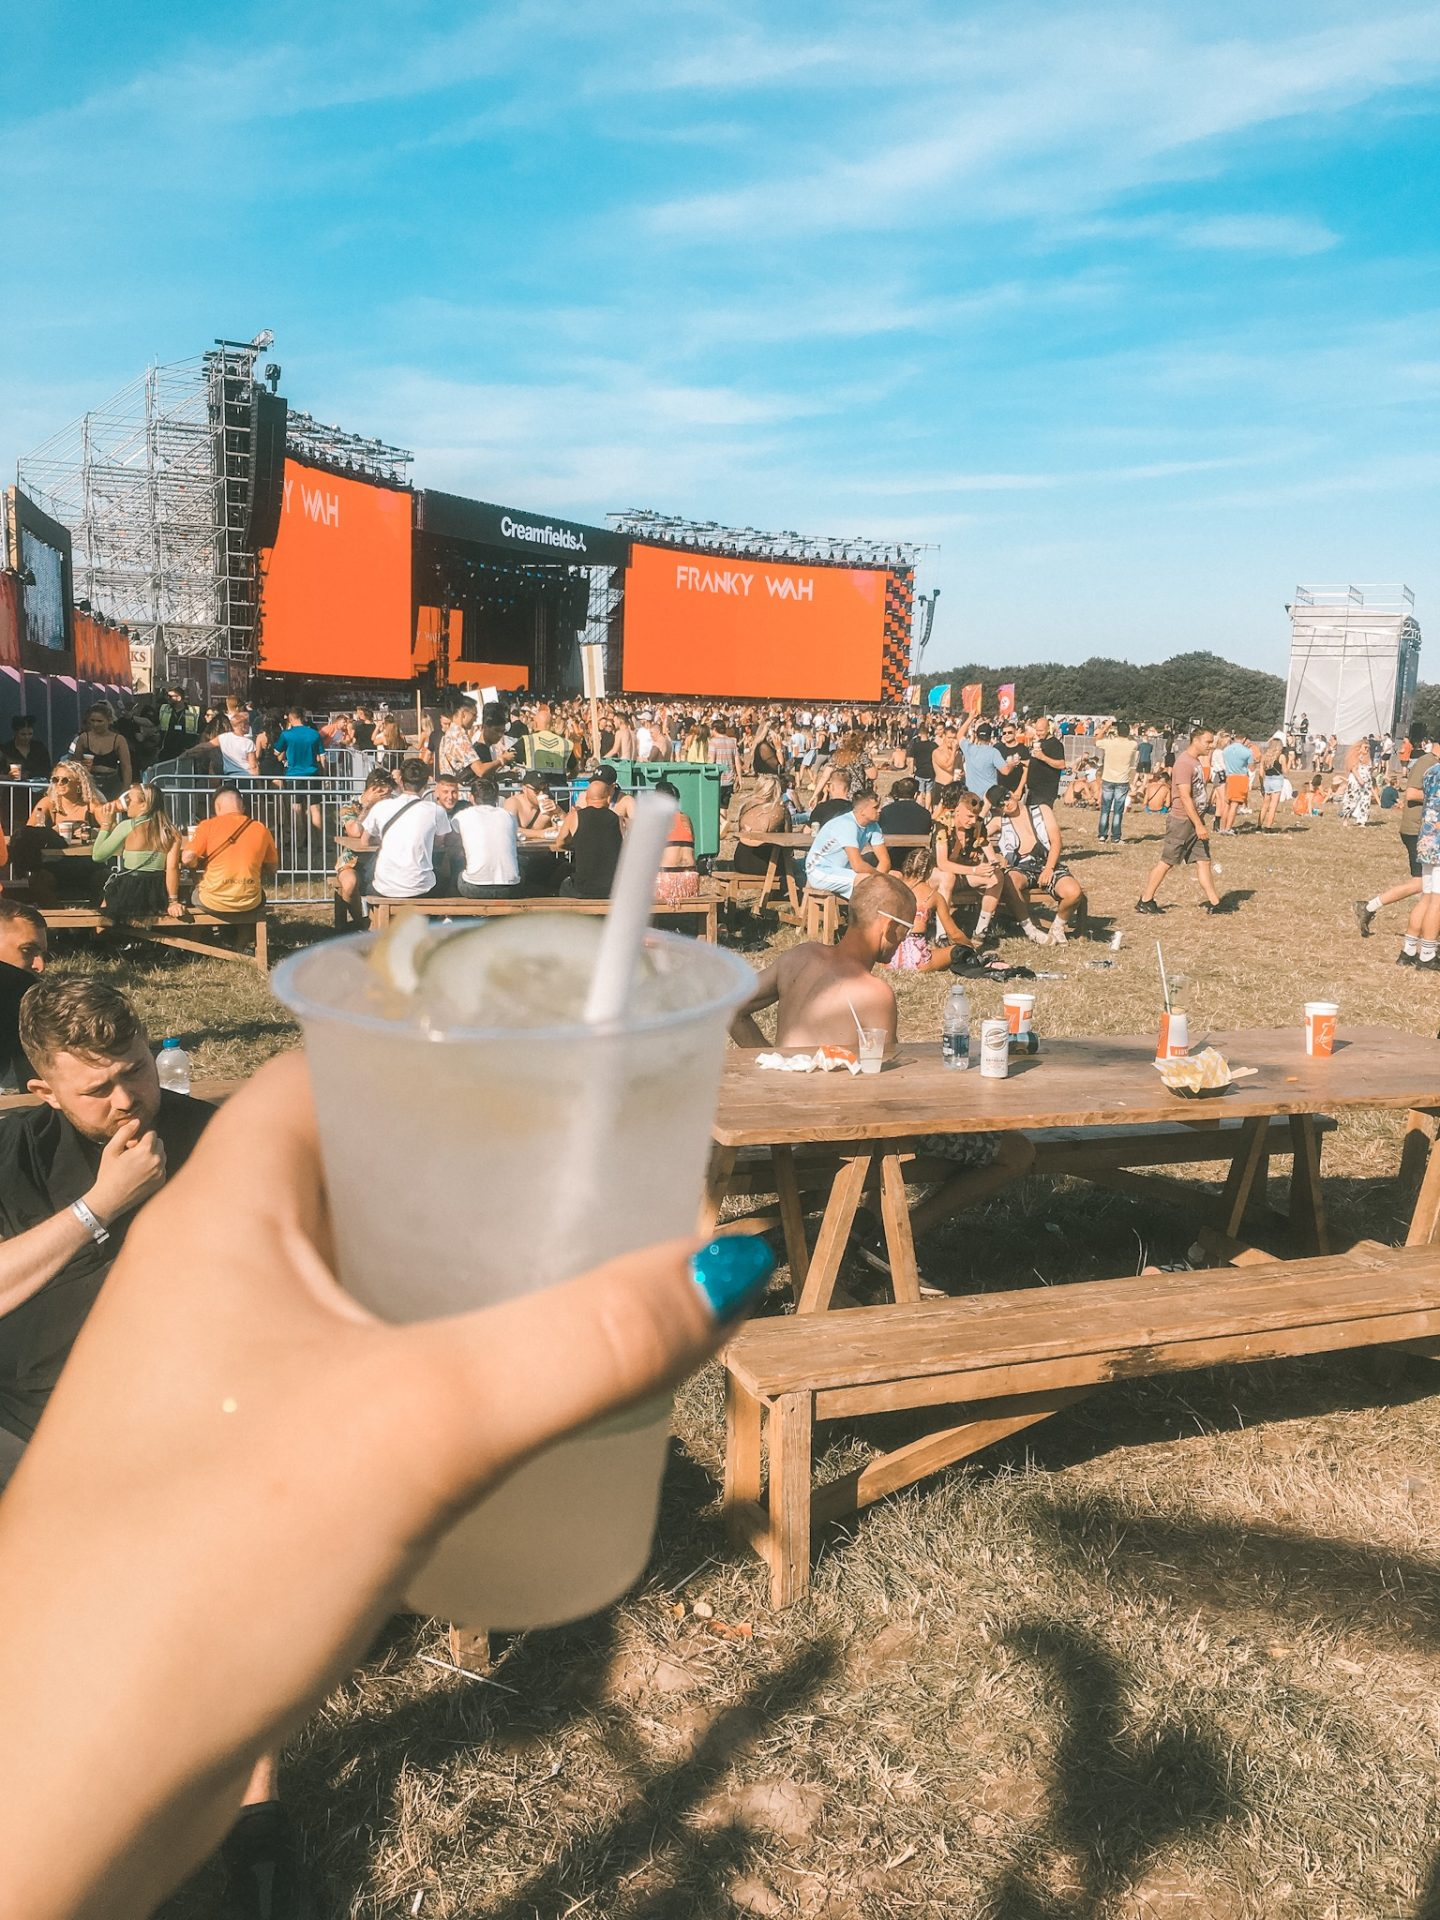 Cocktail at Creamfields festival